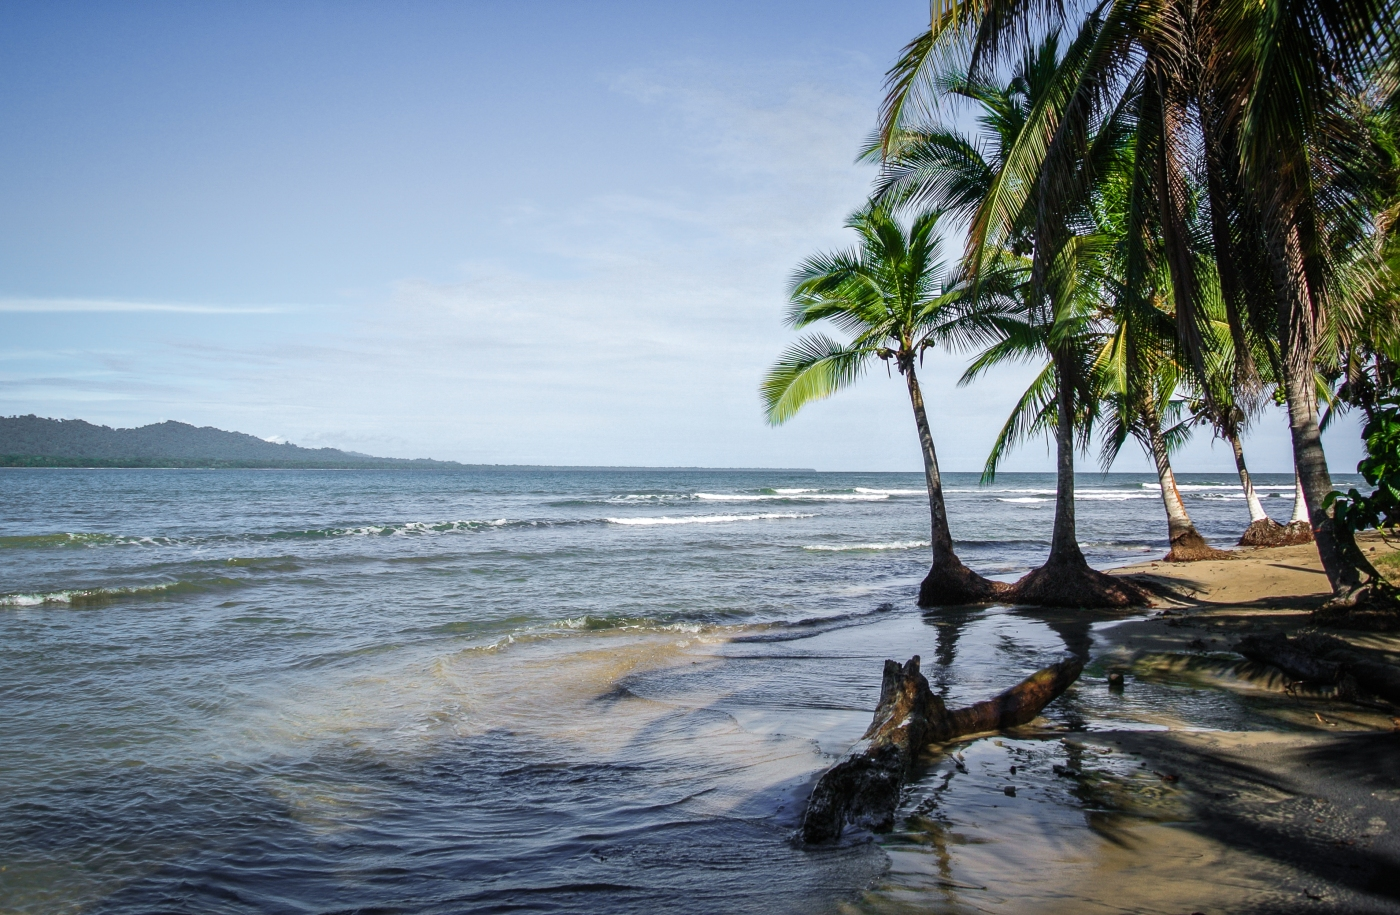 A not so great time in Puerto Viejo (sorry)